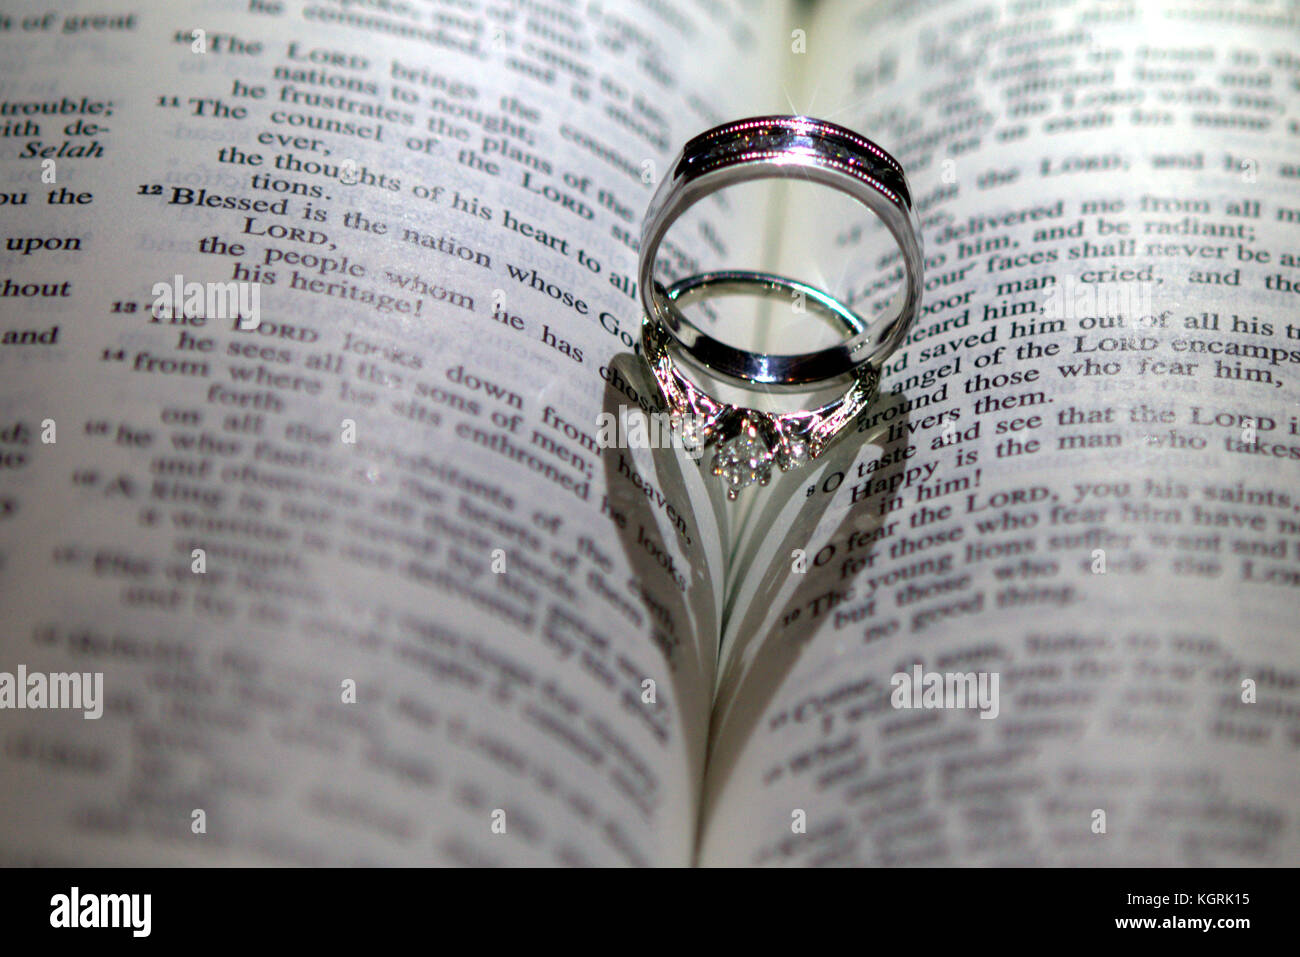 conclusion that jehovah pagan wedding there no yet provides the a scripture any s not witnesses are definite defend evidence is on rings some origin only they objection it have made historical weddings